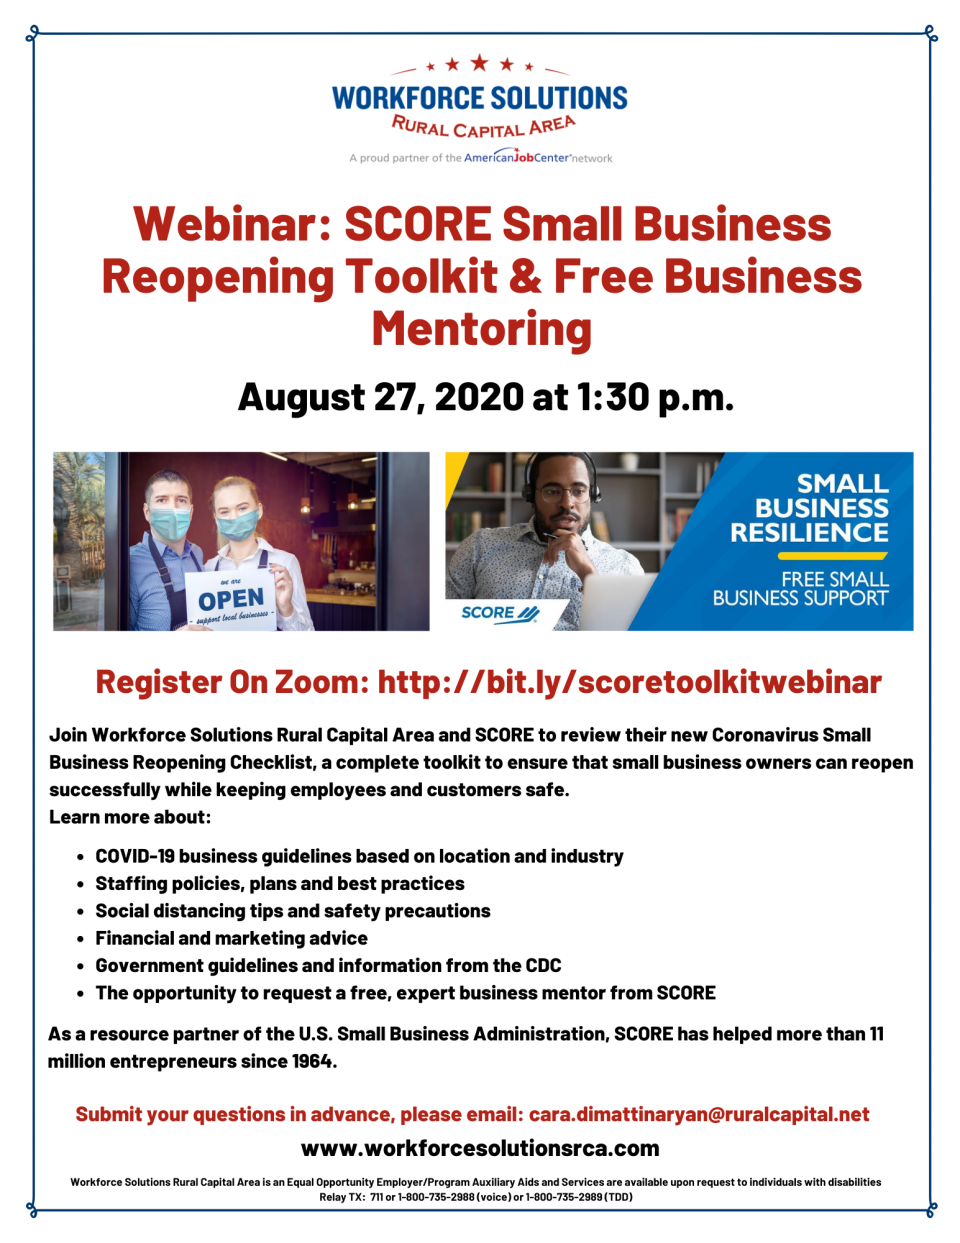 Take Part in a Webinar to Review the SCORE Small Business Reopening Toolkit, Free Business Mentoring